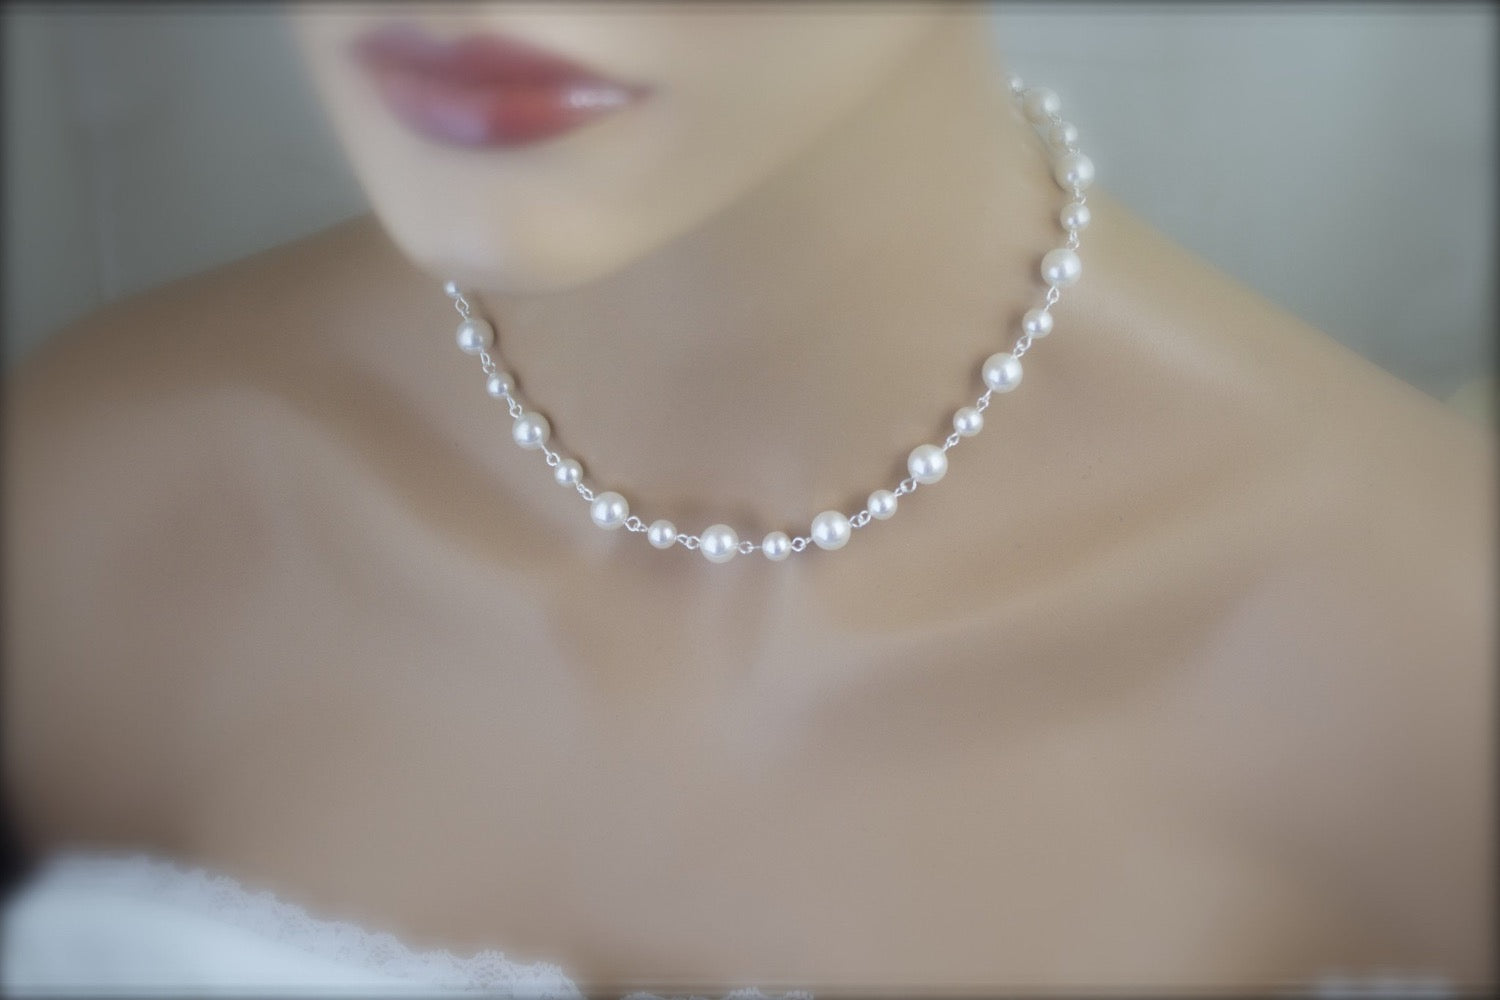 Wedding pearl necklace bridal jewelry Canada shop online - Clairesbridal - 1